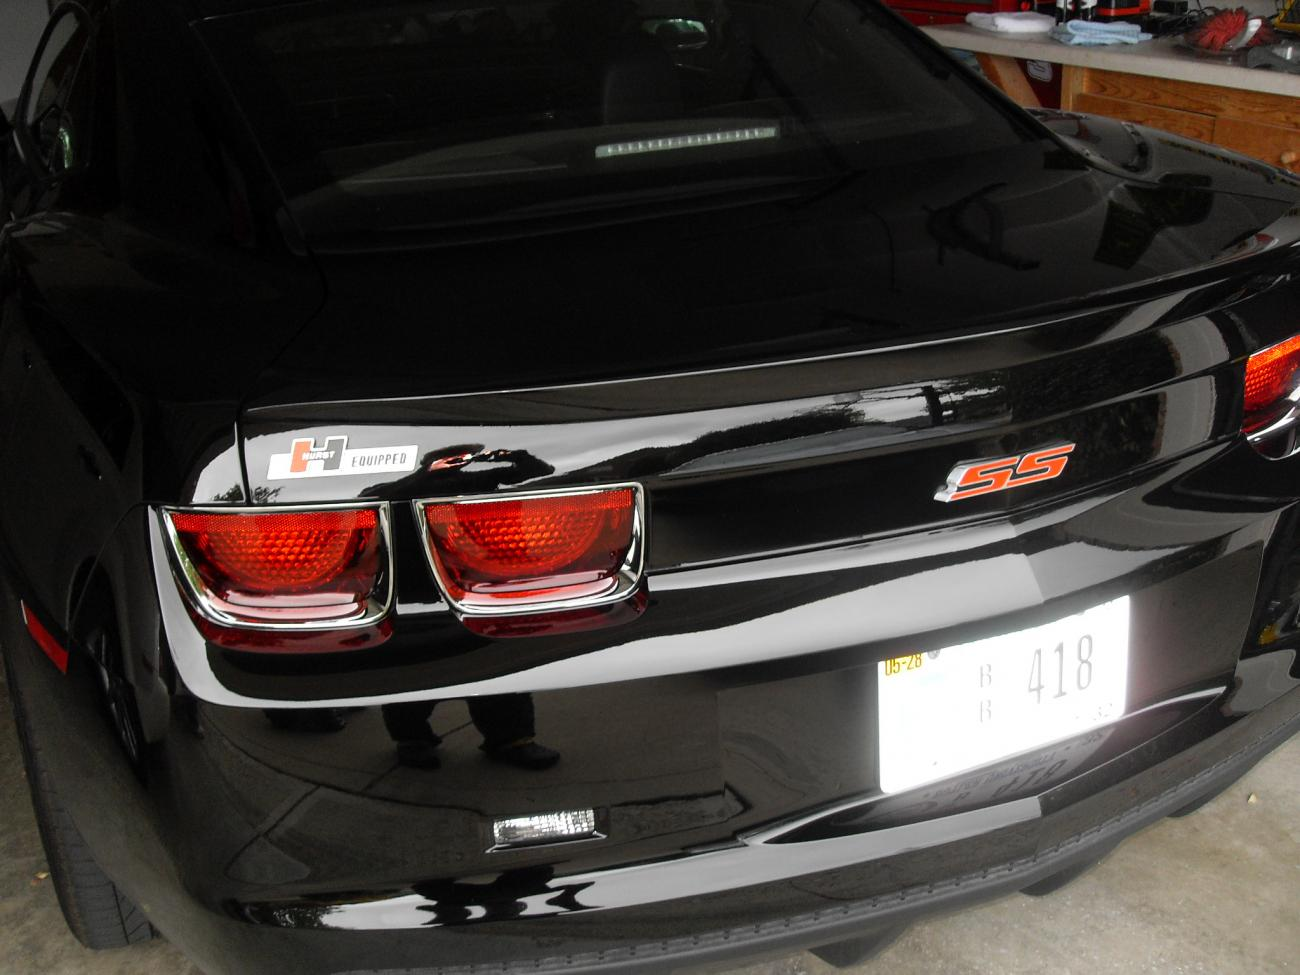 2011 2ss Camaro Badges And Emblems.html | Autos Post